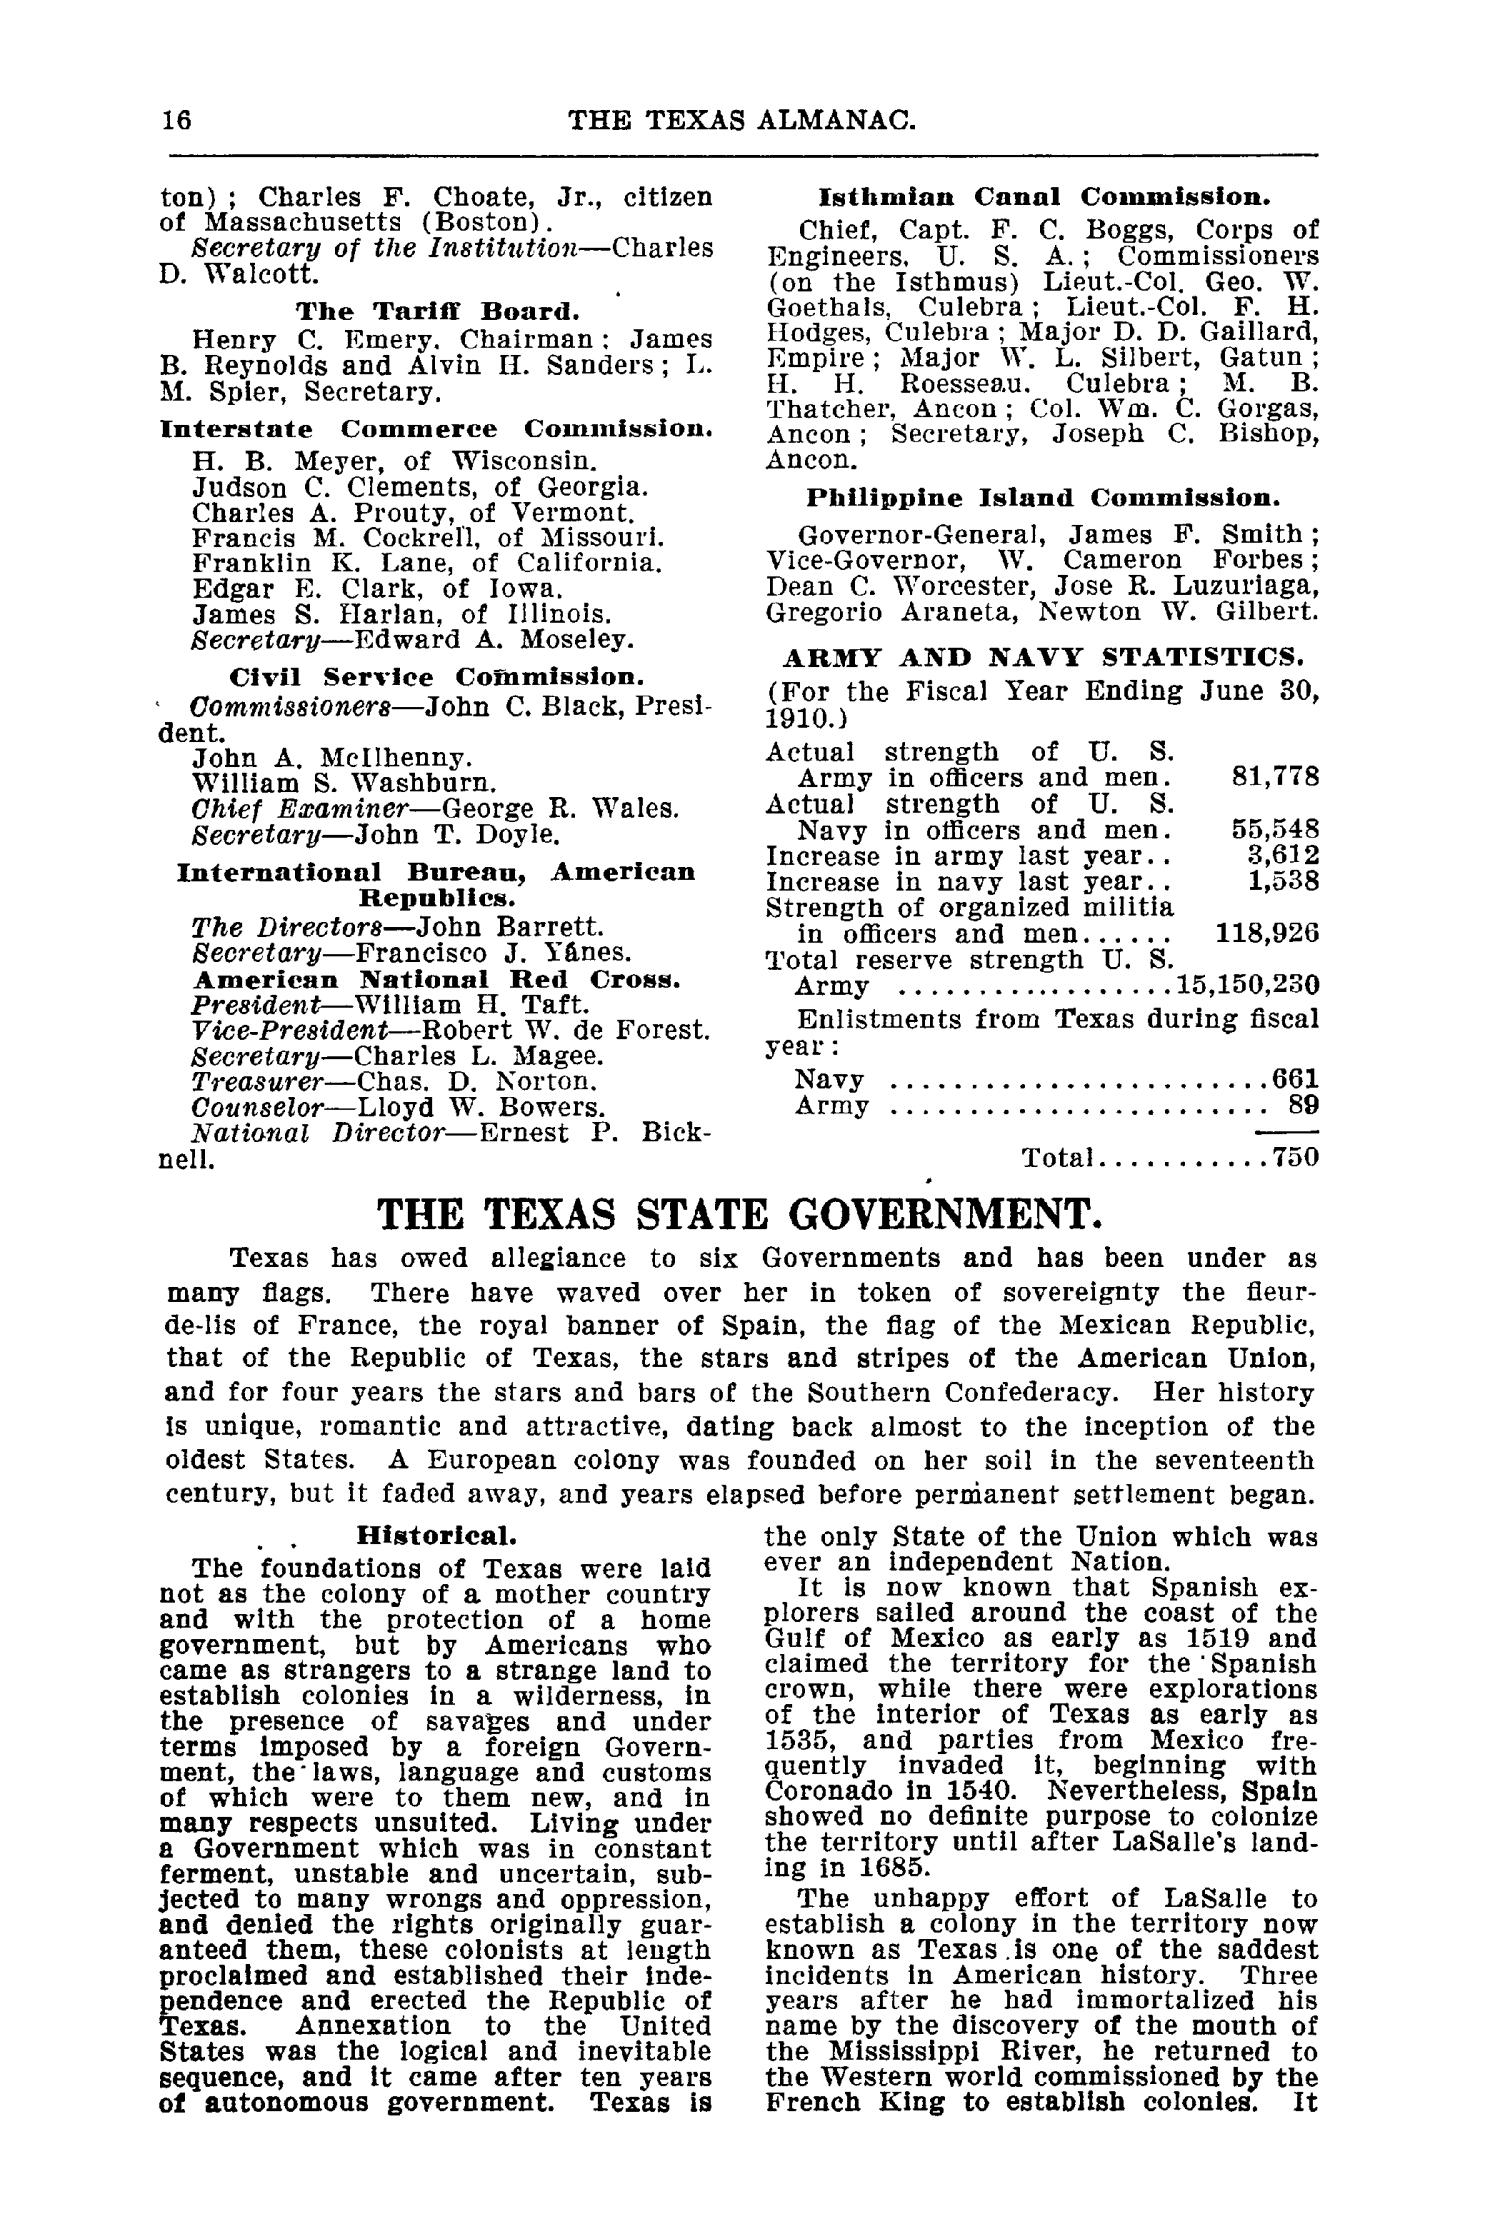 Texas Almanac and State Industrial Guide for 1911 with Map                                                                                                      16